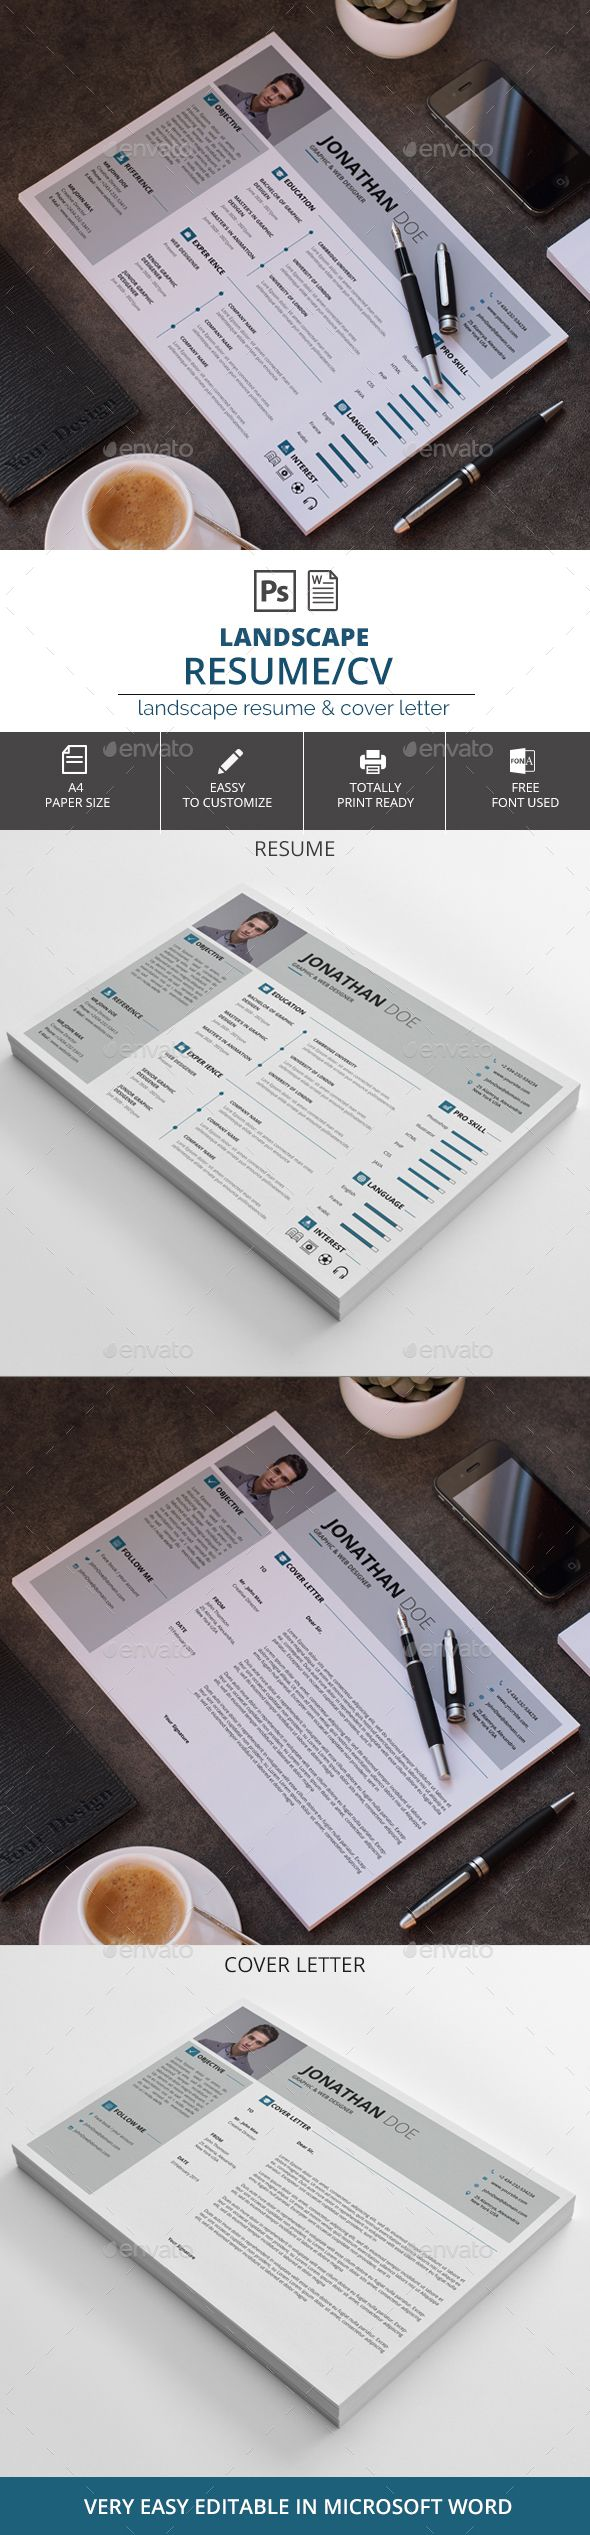 Landscape ResumeCV 134 best resume design and